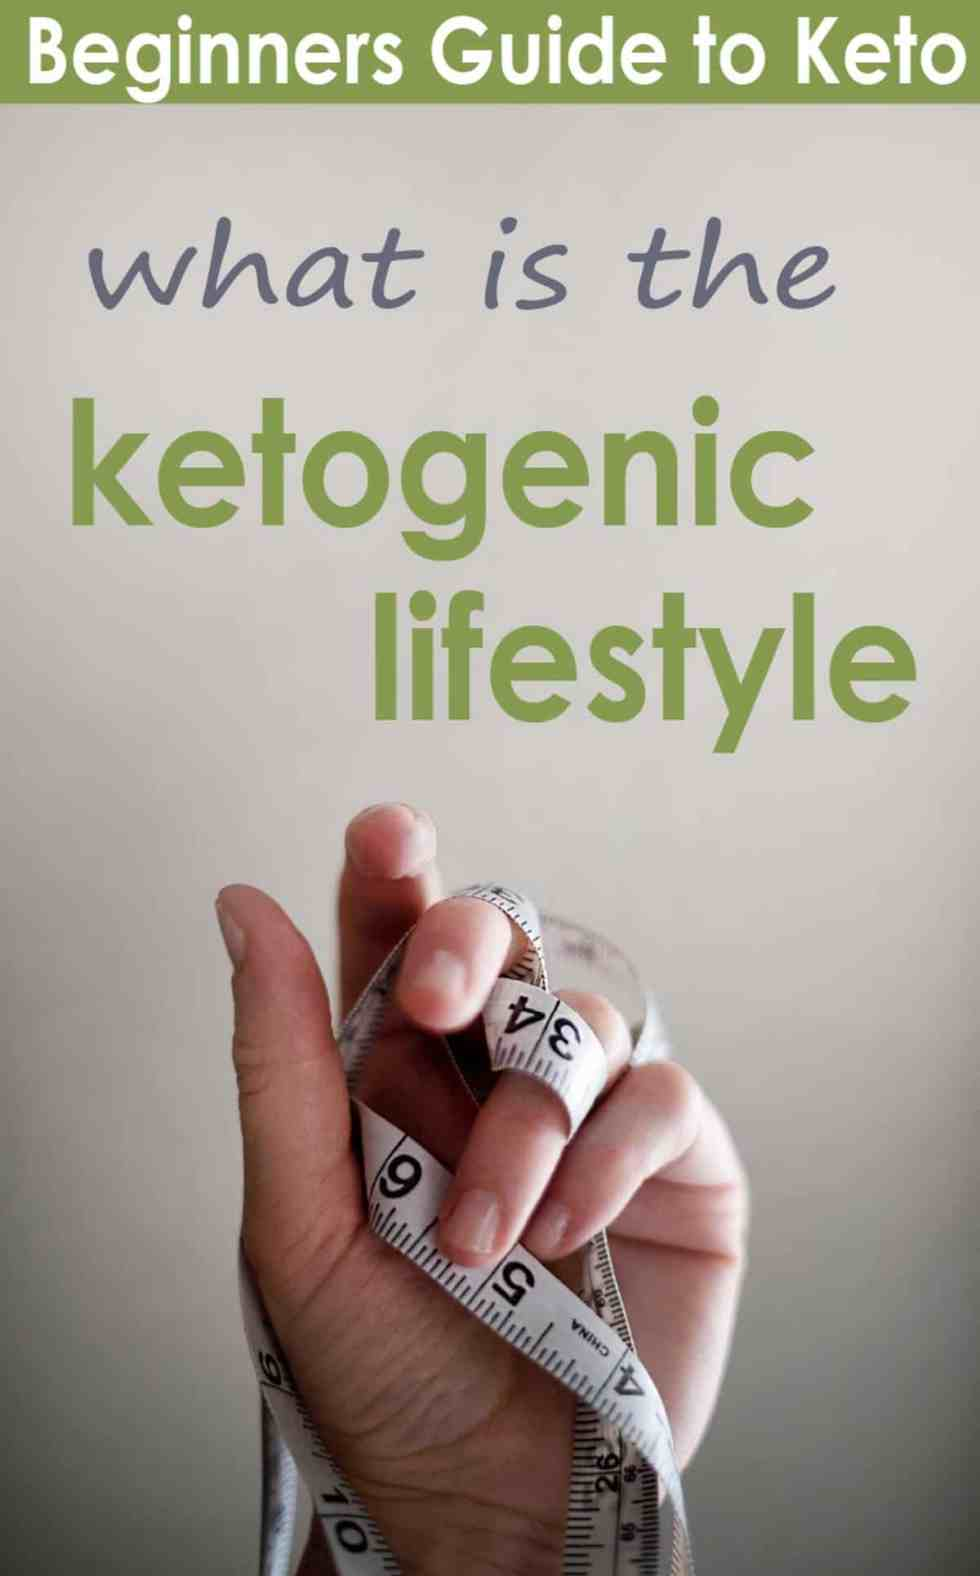 Similiar to Paleo, Keto is a lifestyle change. Many following the Keto diet intend to adopt long-term habits of reduced carb and sugar intake. #keto #ketogenic #ketogeniclifestyle